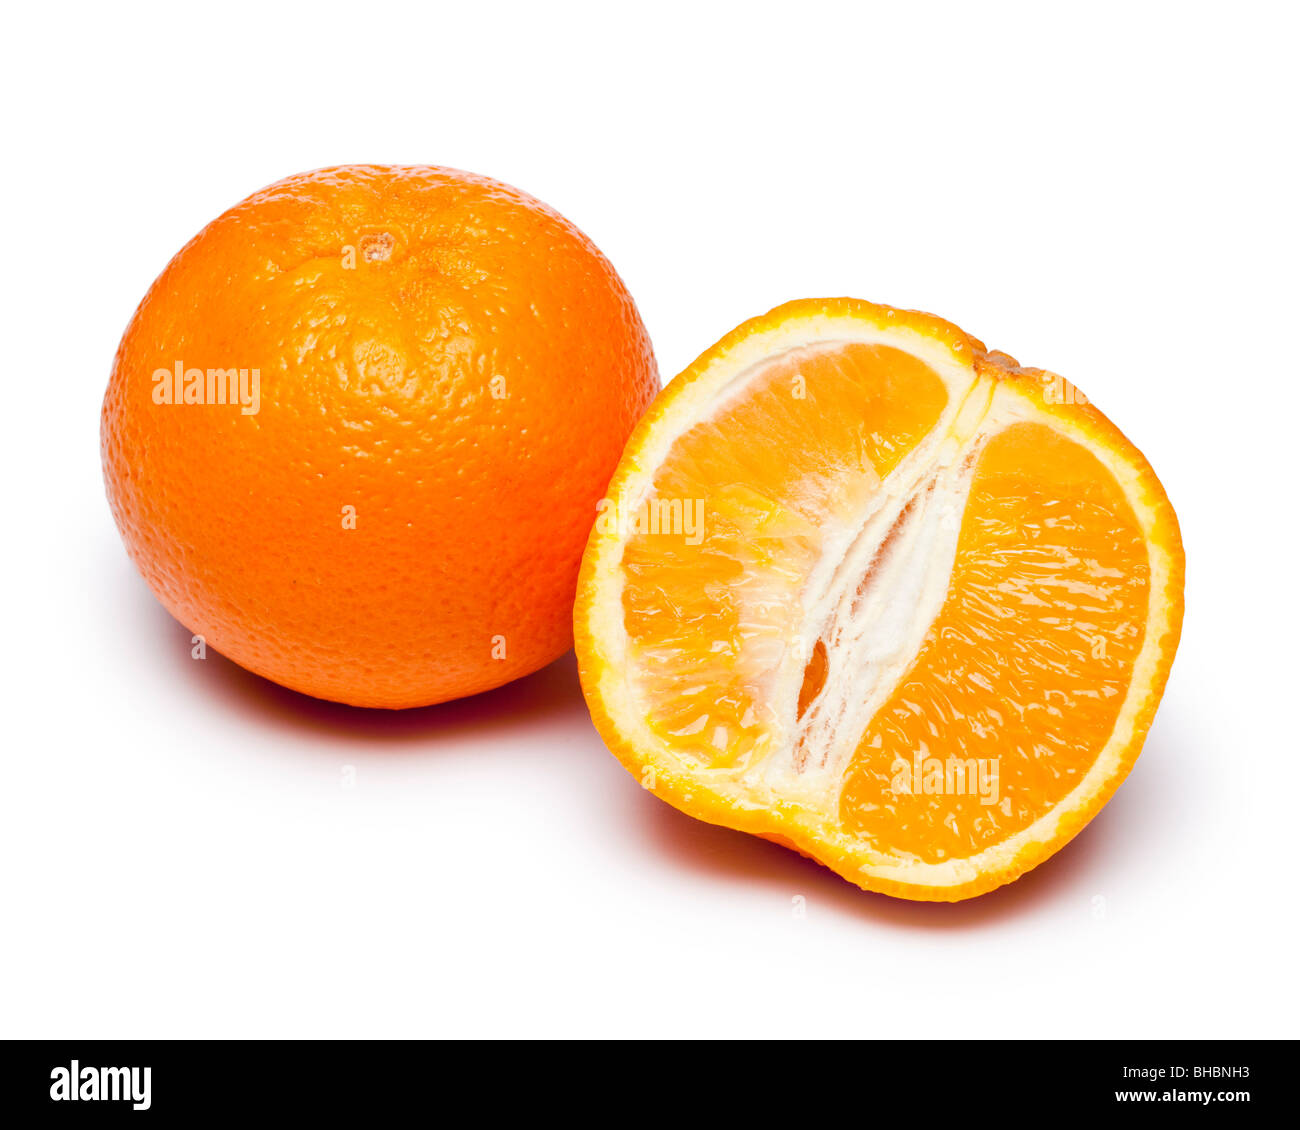 Oranges whole and halved - Stock Image